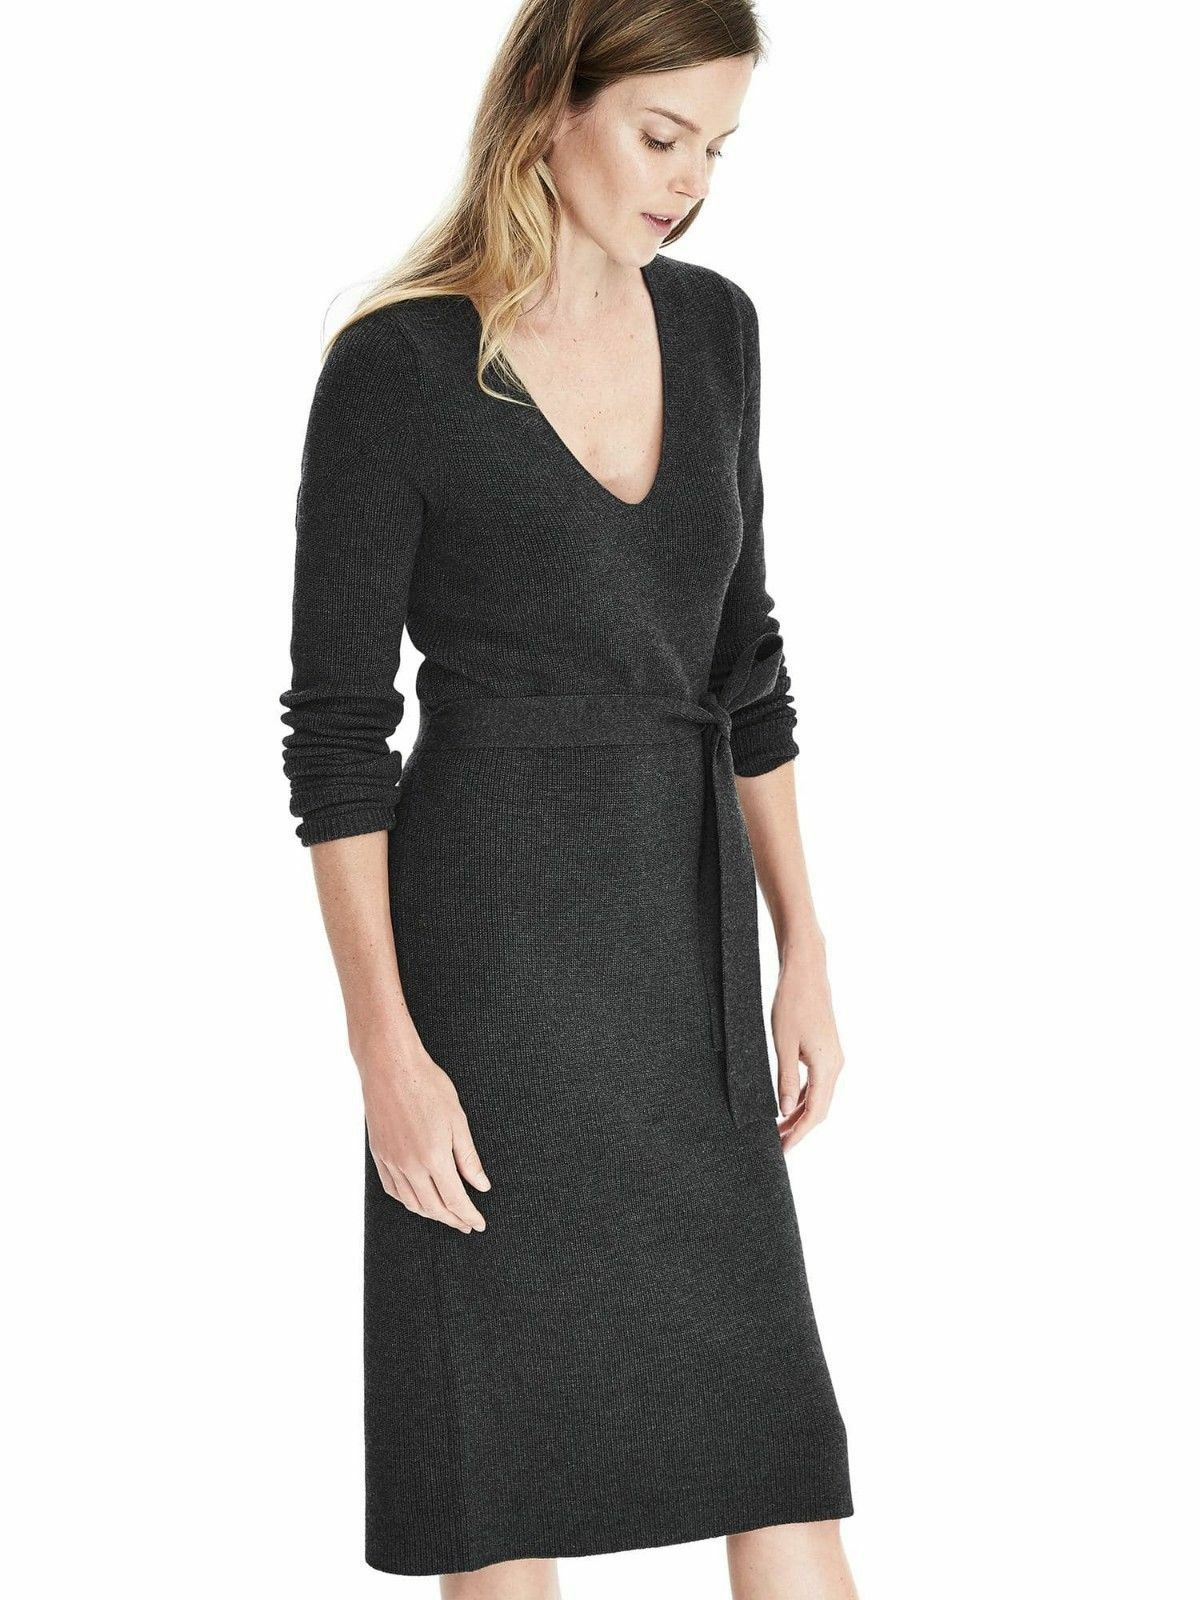 Banana Republic Belted Vee Sweater Dress, Graphite Größe M          v1119